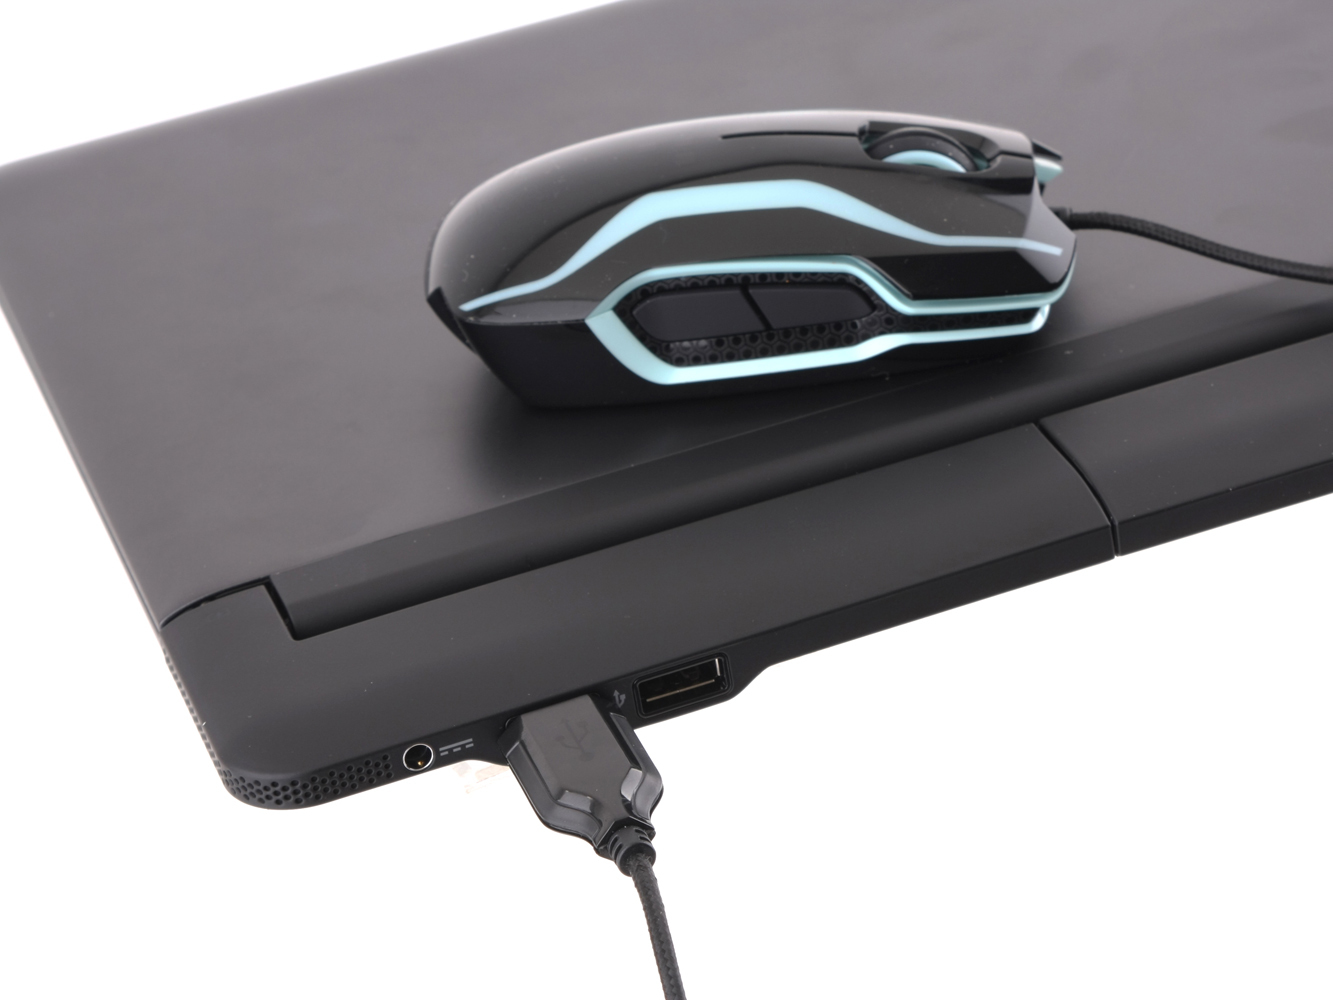 The rear USB ports work with mice, or with flash drives.